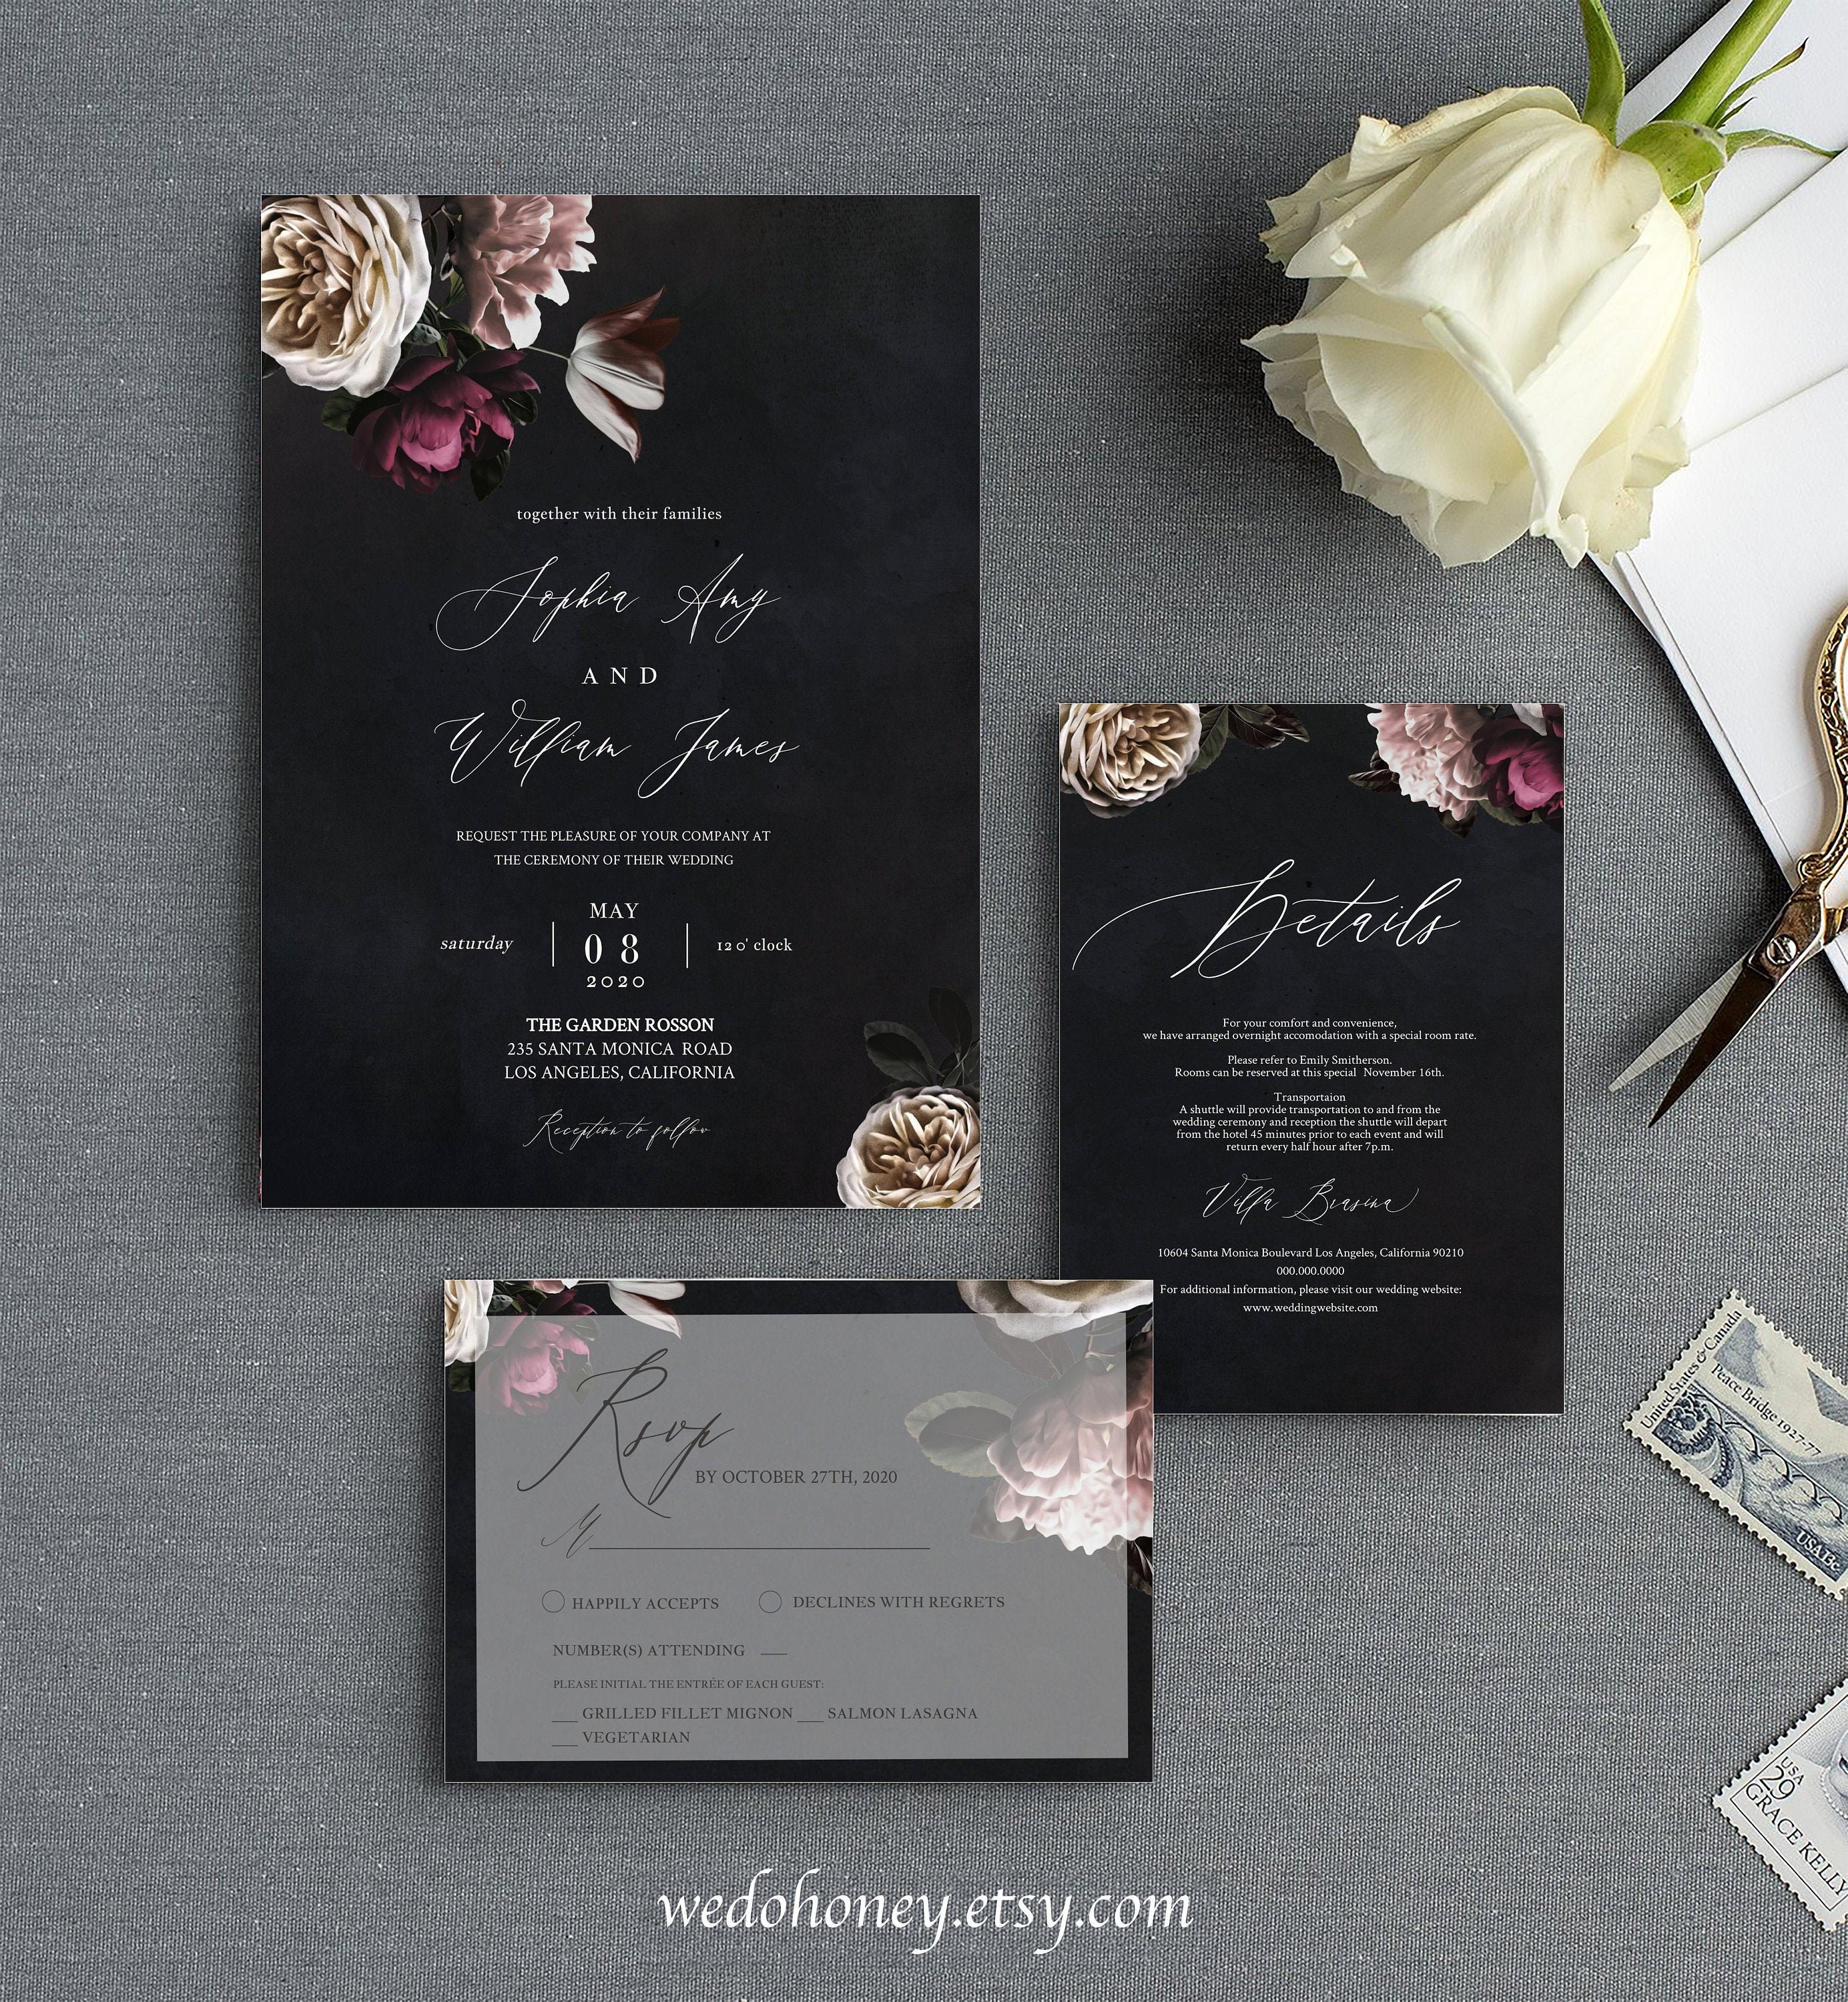 Moody Wedding Invitation Suite, RSVP and Details Card, Botanical Set Invites, Editable Text with Corjl #WDH045